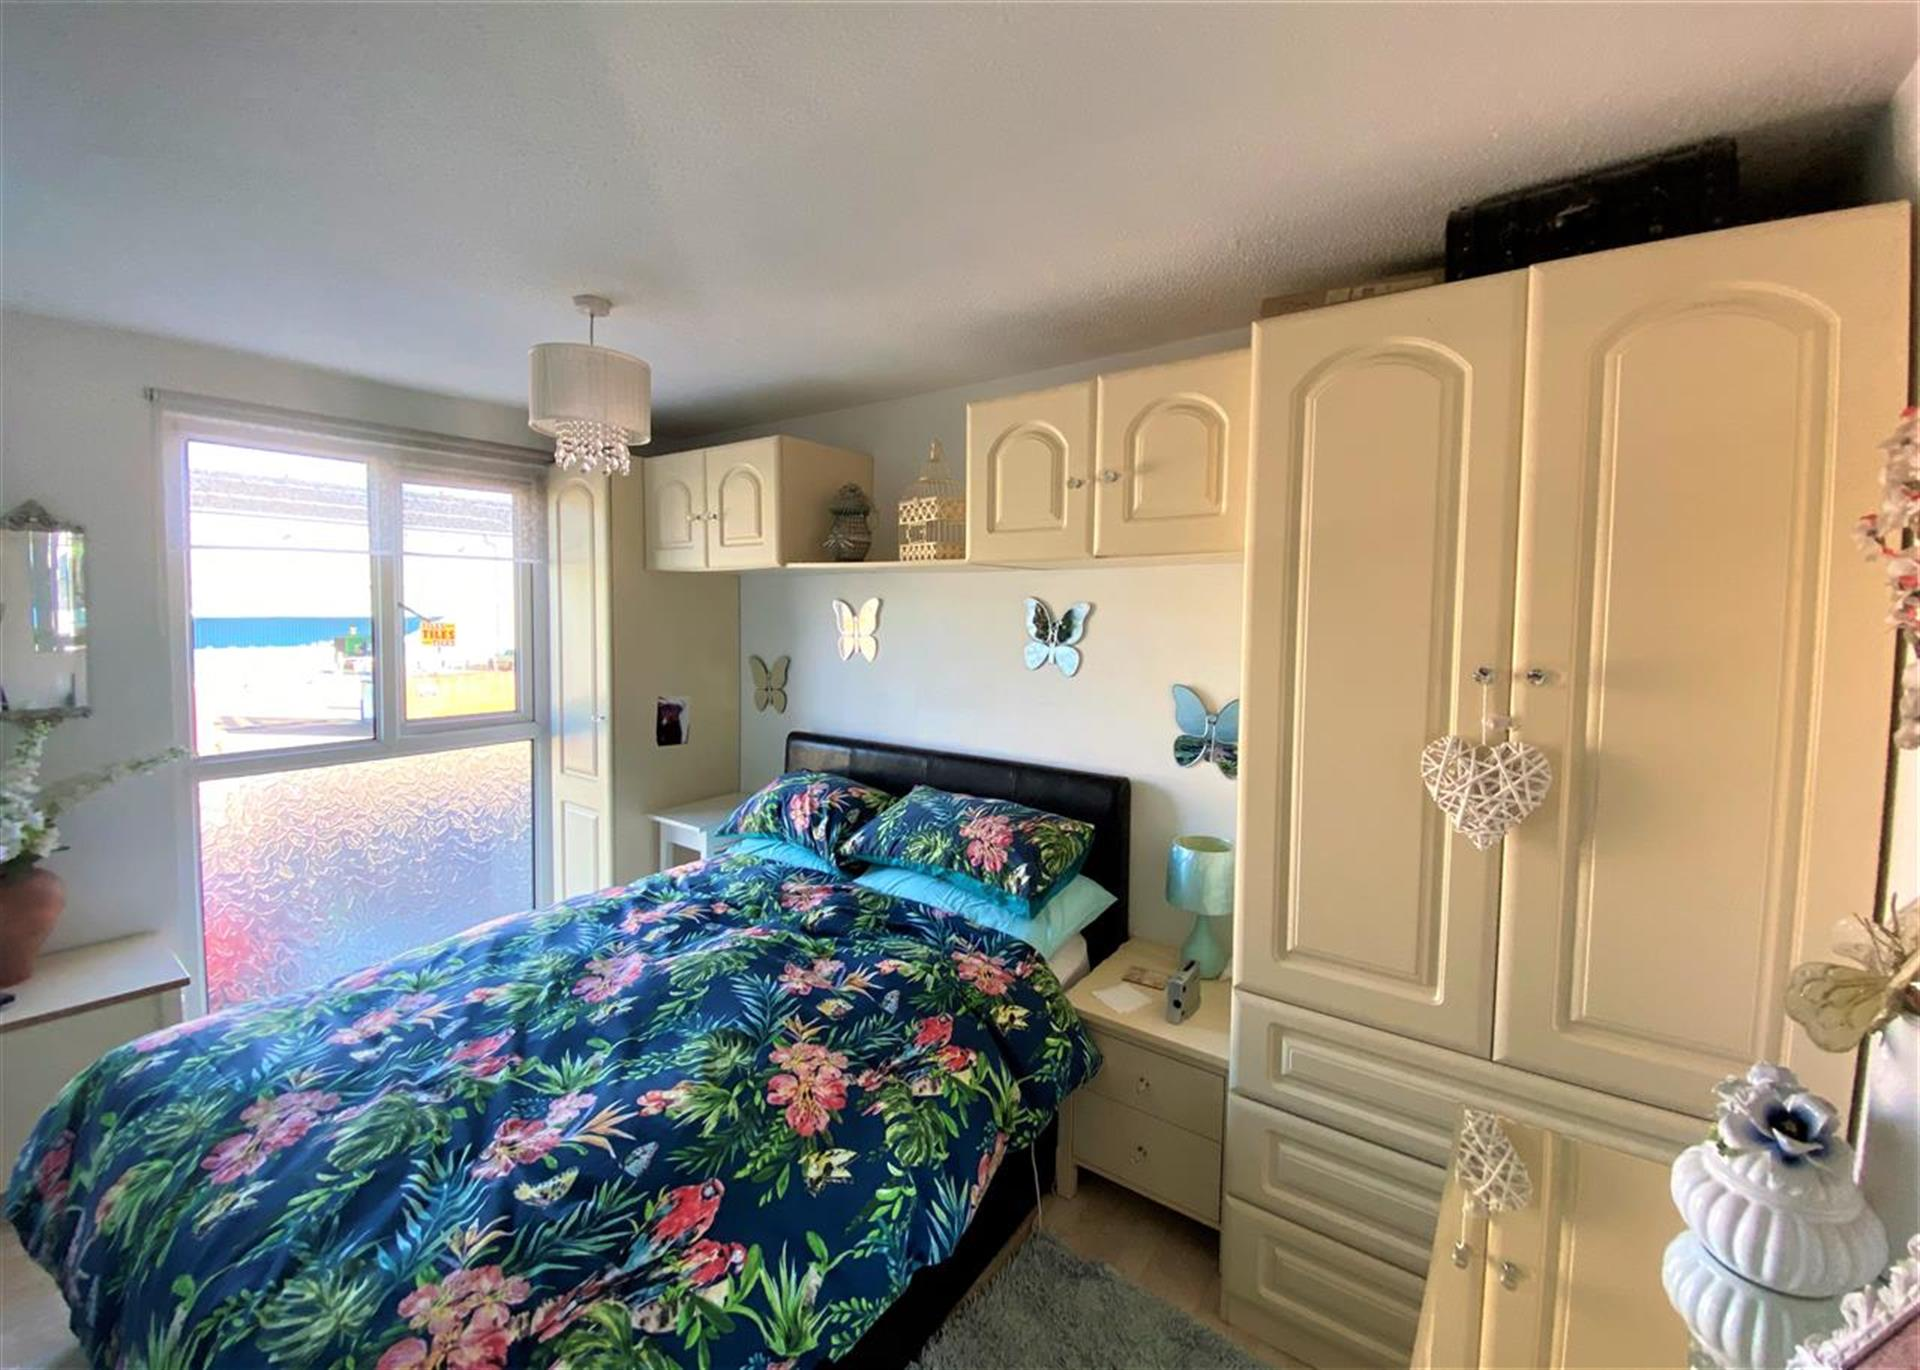 3 Bedroom Terraced House For Sale - Bedroom One